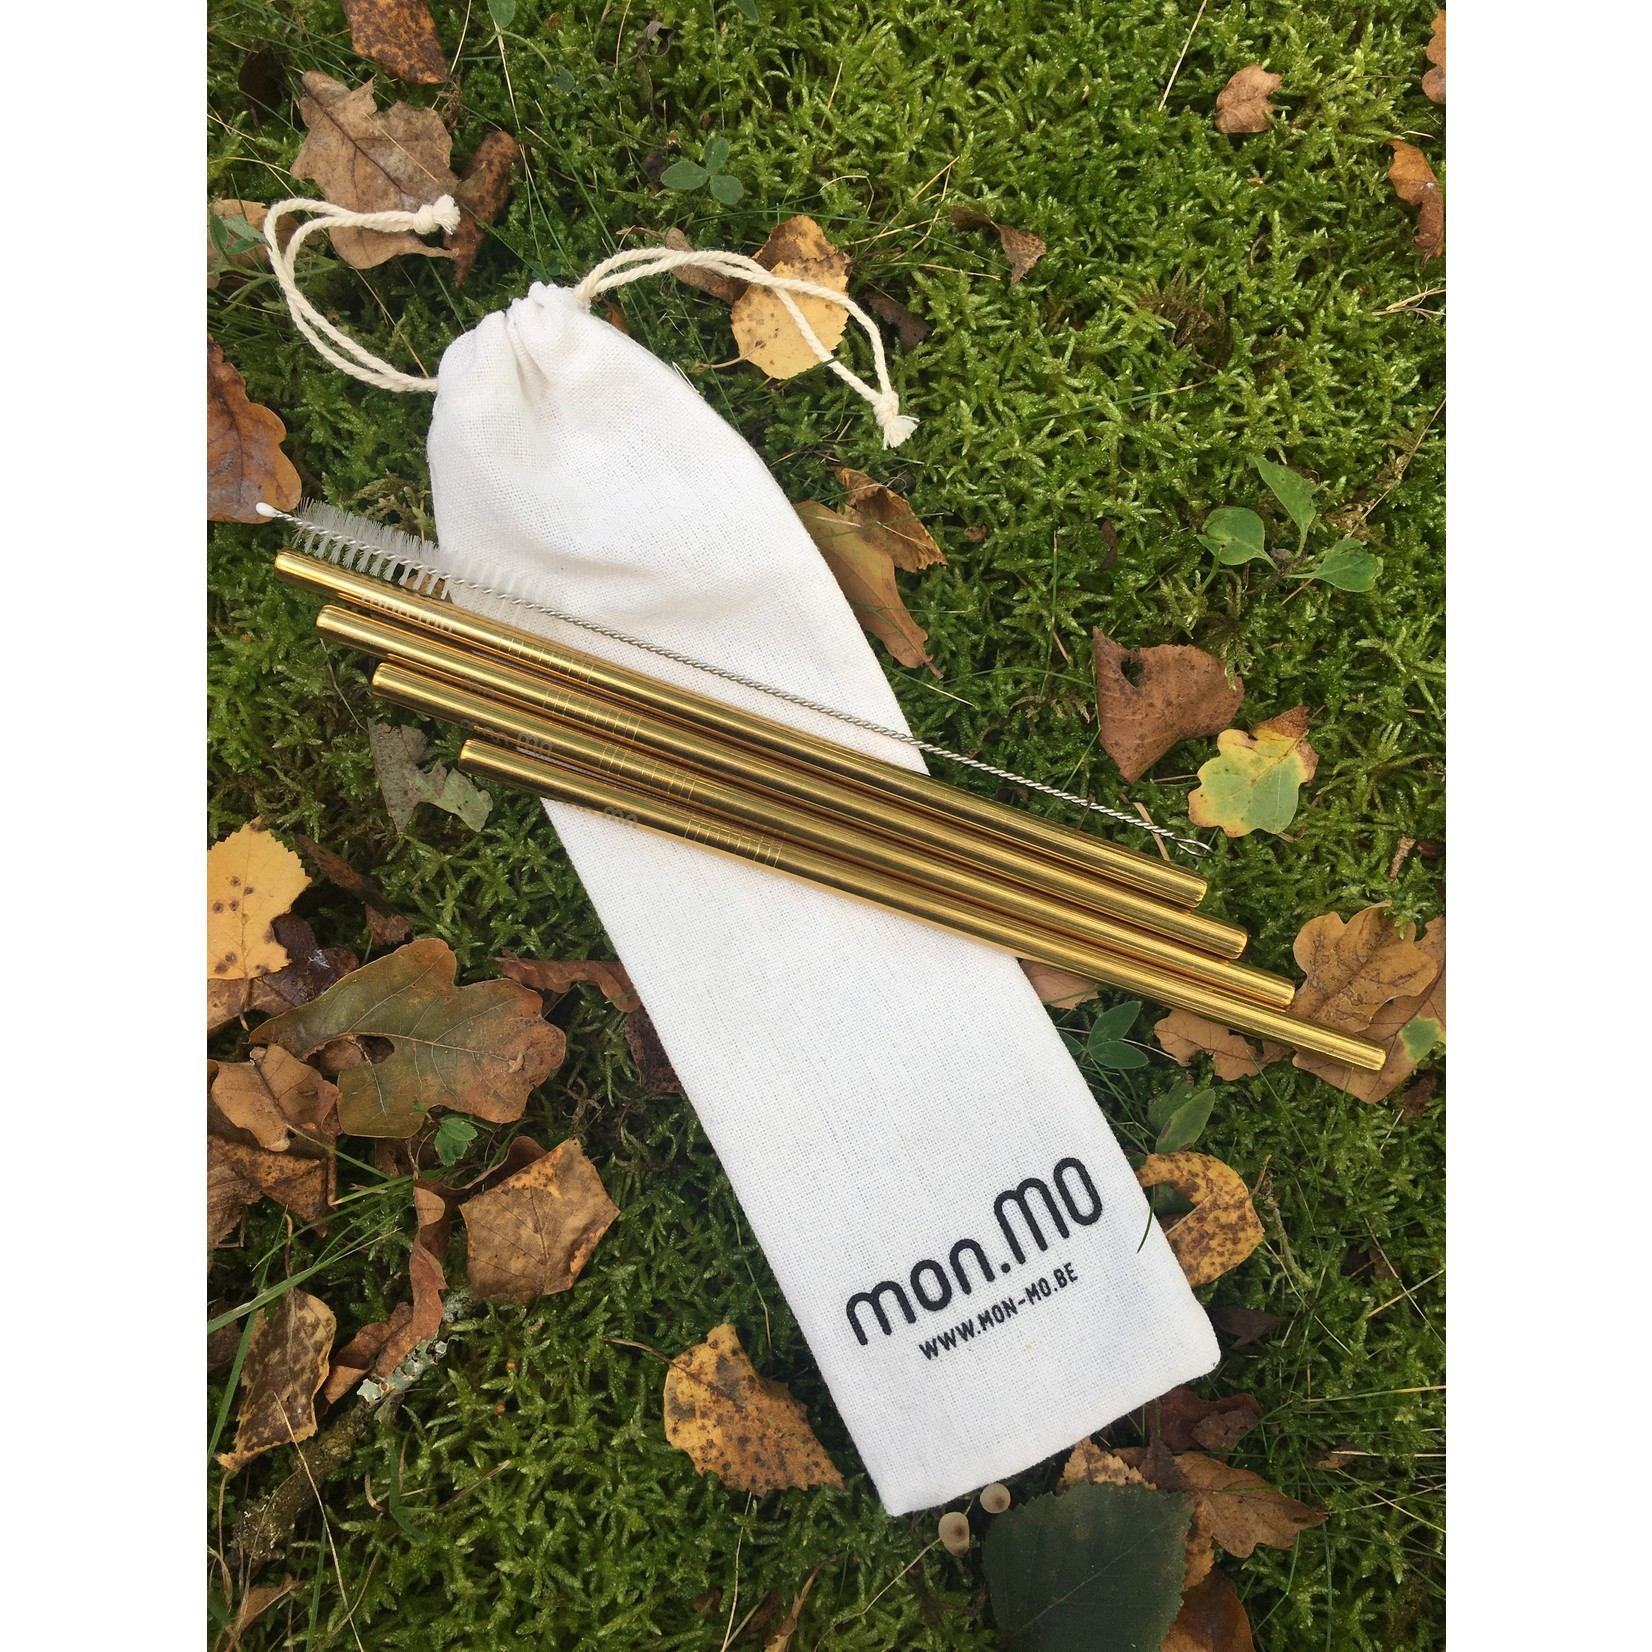 mon.MO mon.MO Reusable Smoothie Straws - GOLD - 4 pack with brush & pouch - Copy